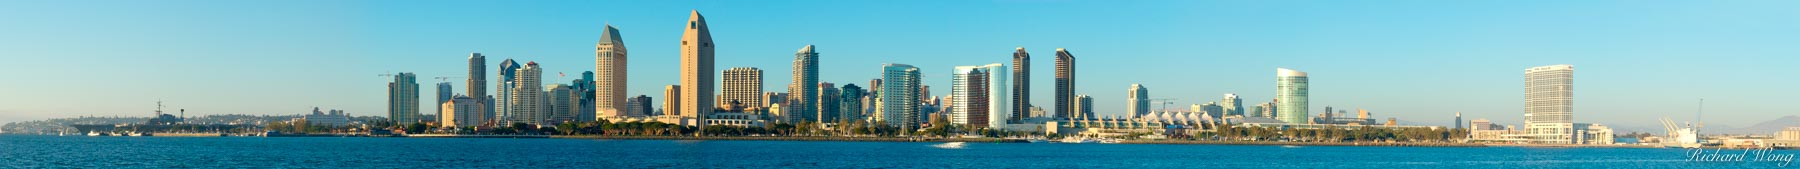 Pacific Ocean, architectural buildings, architecture, bay, bays, building, business, businesses, ca, cities, city, cityscape, coast, coastal, coastline, coronado island, downtown, harbor, high rise, h, photo